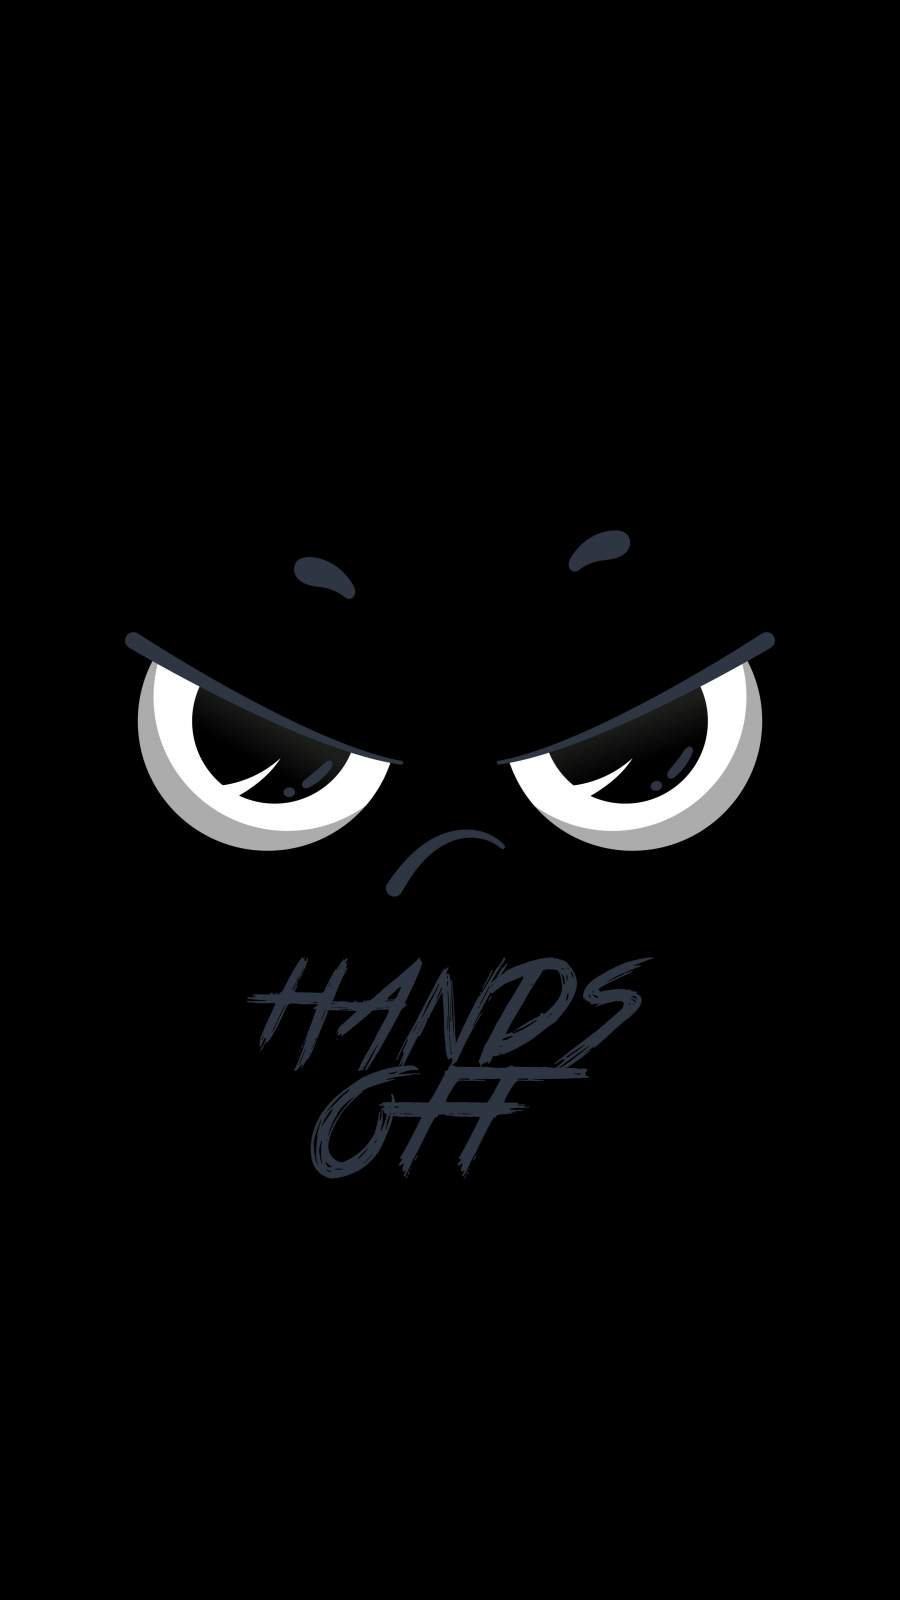 Hands Off iPhone Wallpaper